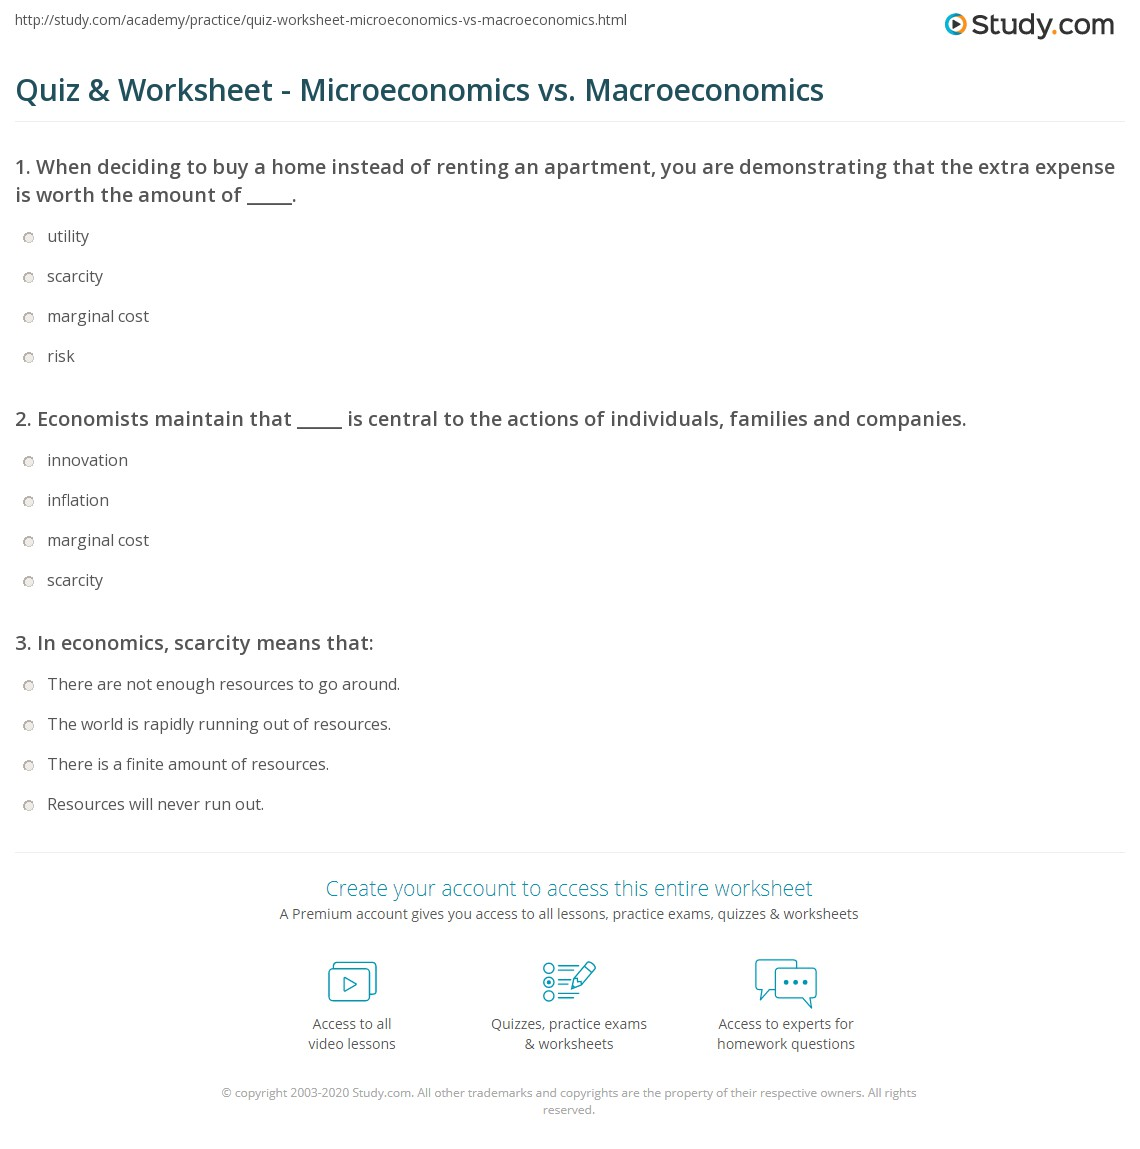 choose all the topics that are related to microeconomics